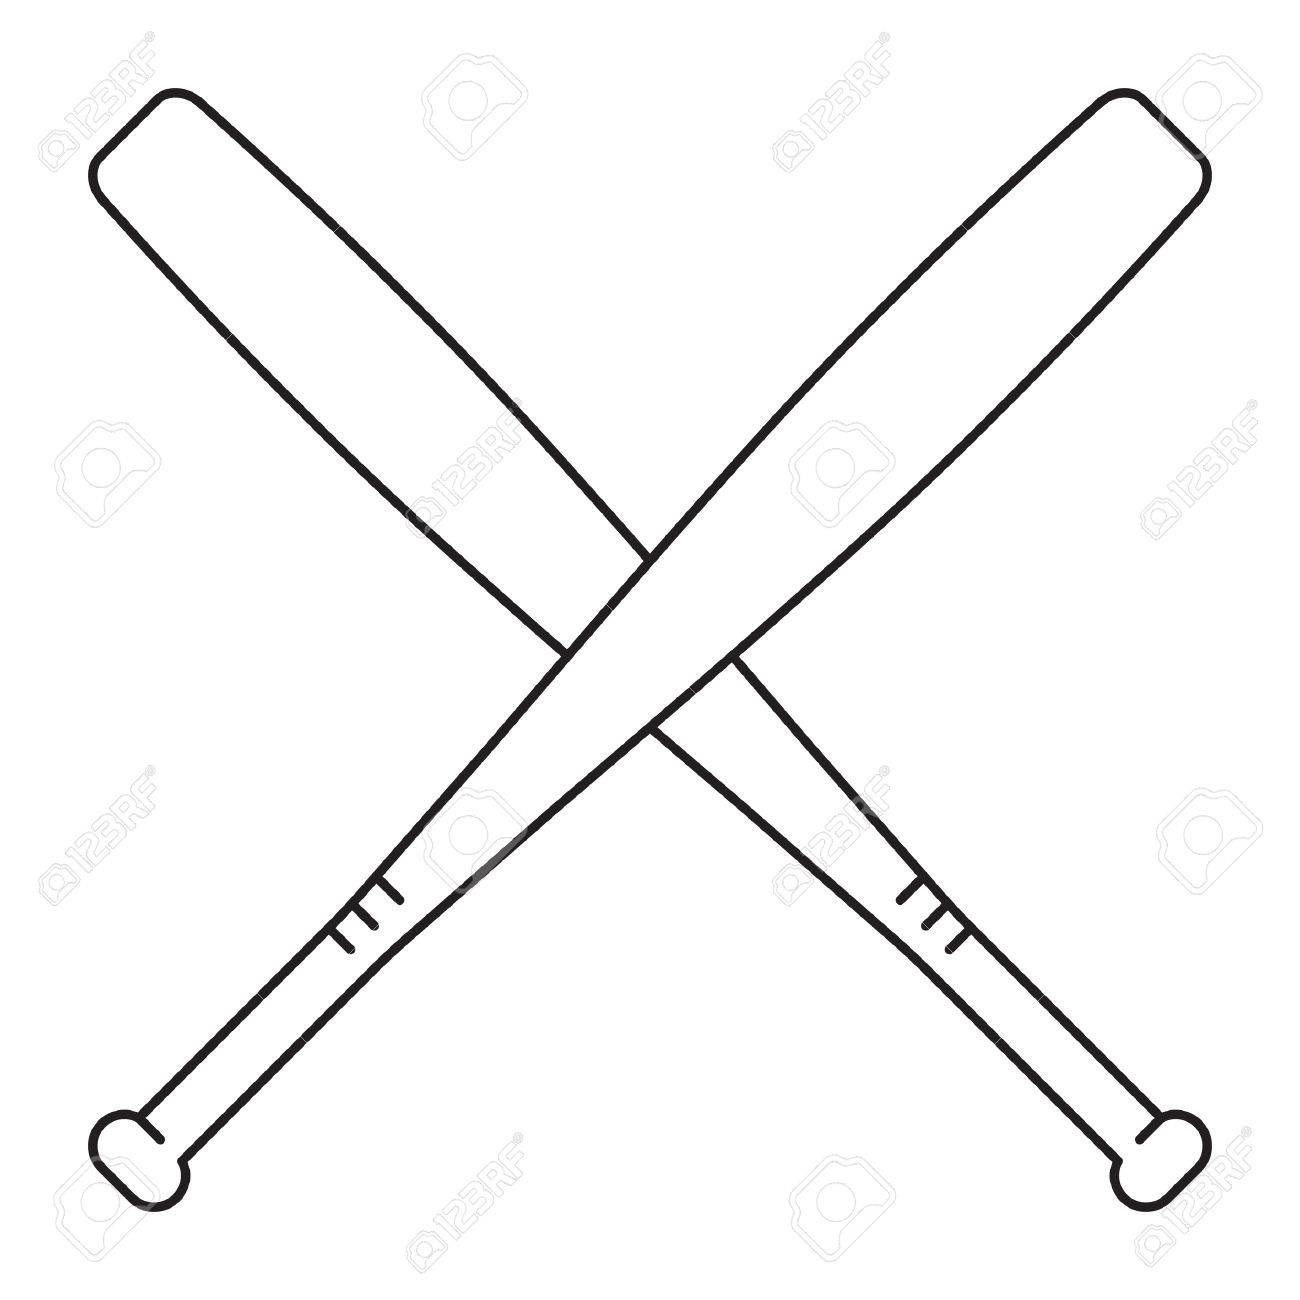 crossed baseball bat royalty free cliparts vectors and stock rh 123rf com Baseball Bat and Ball crossed baseball bats clipart black and white